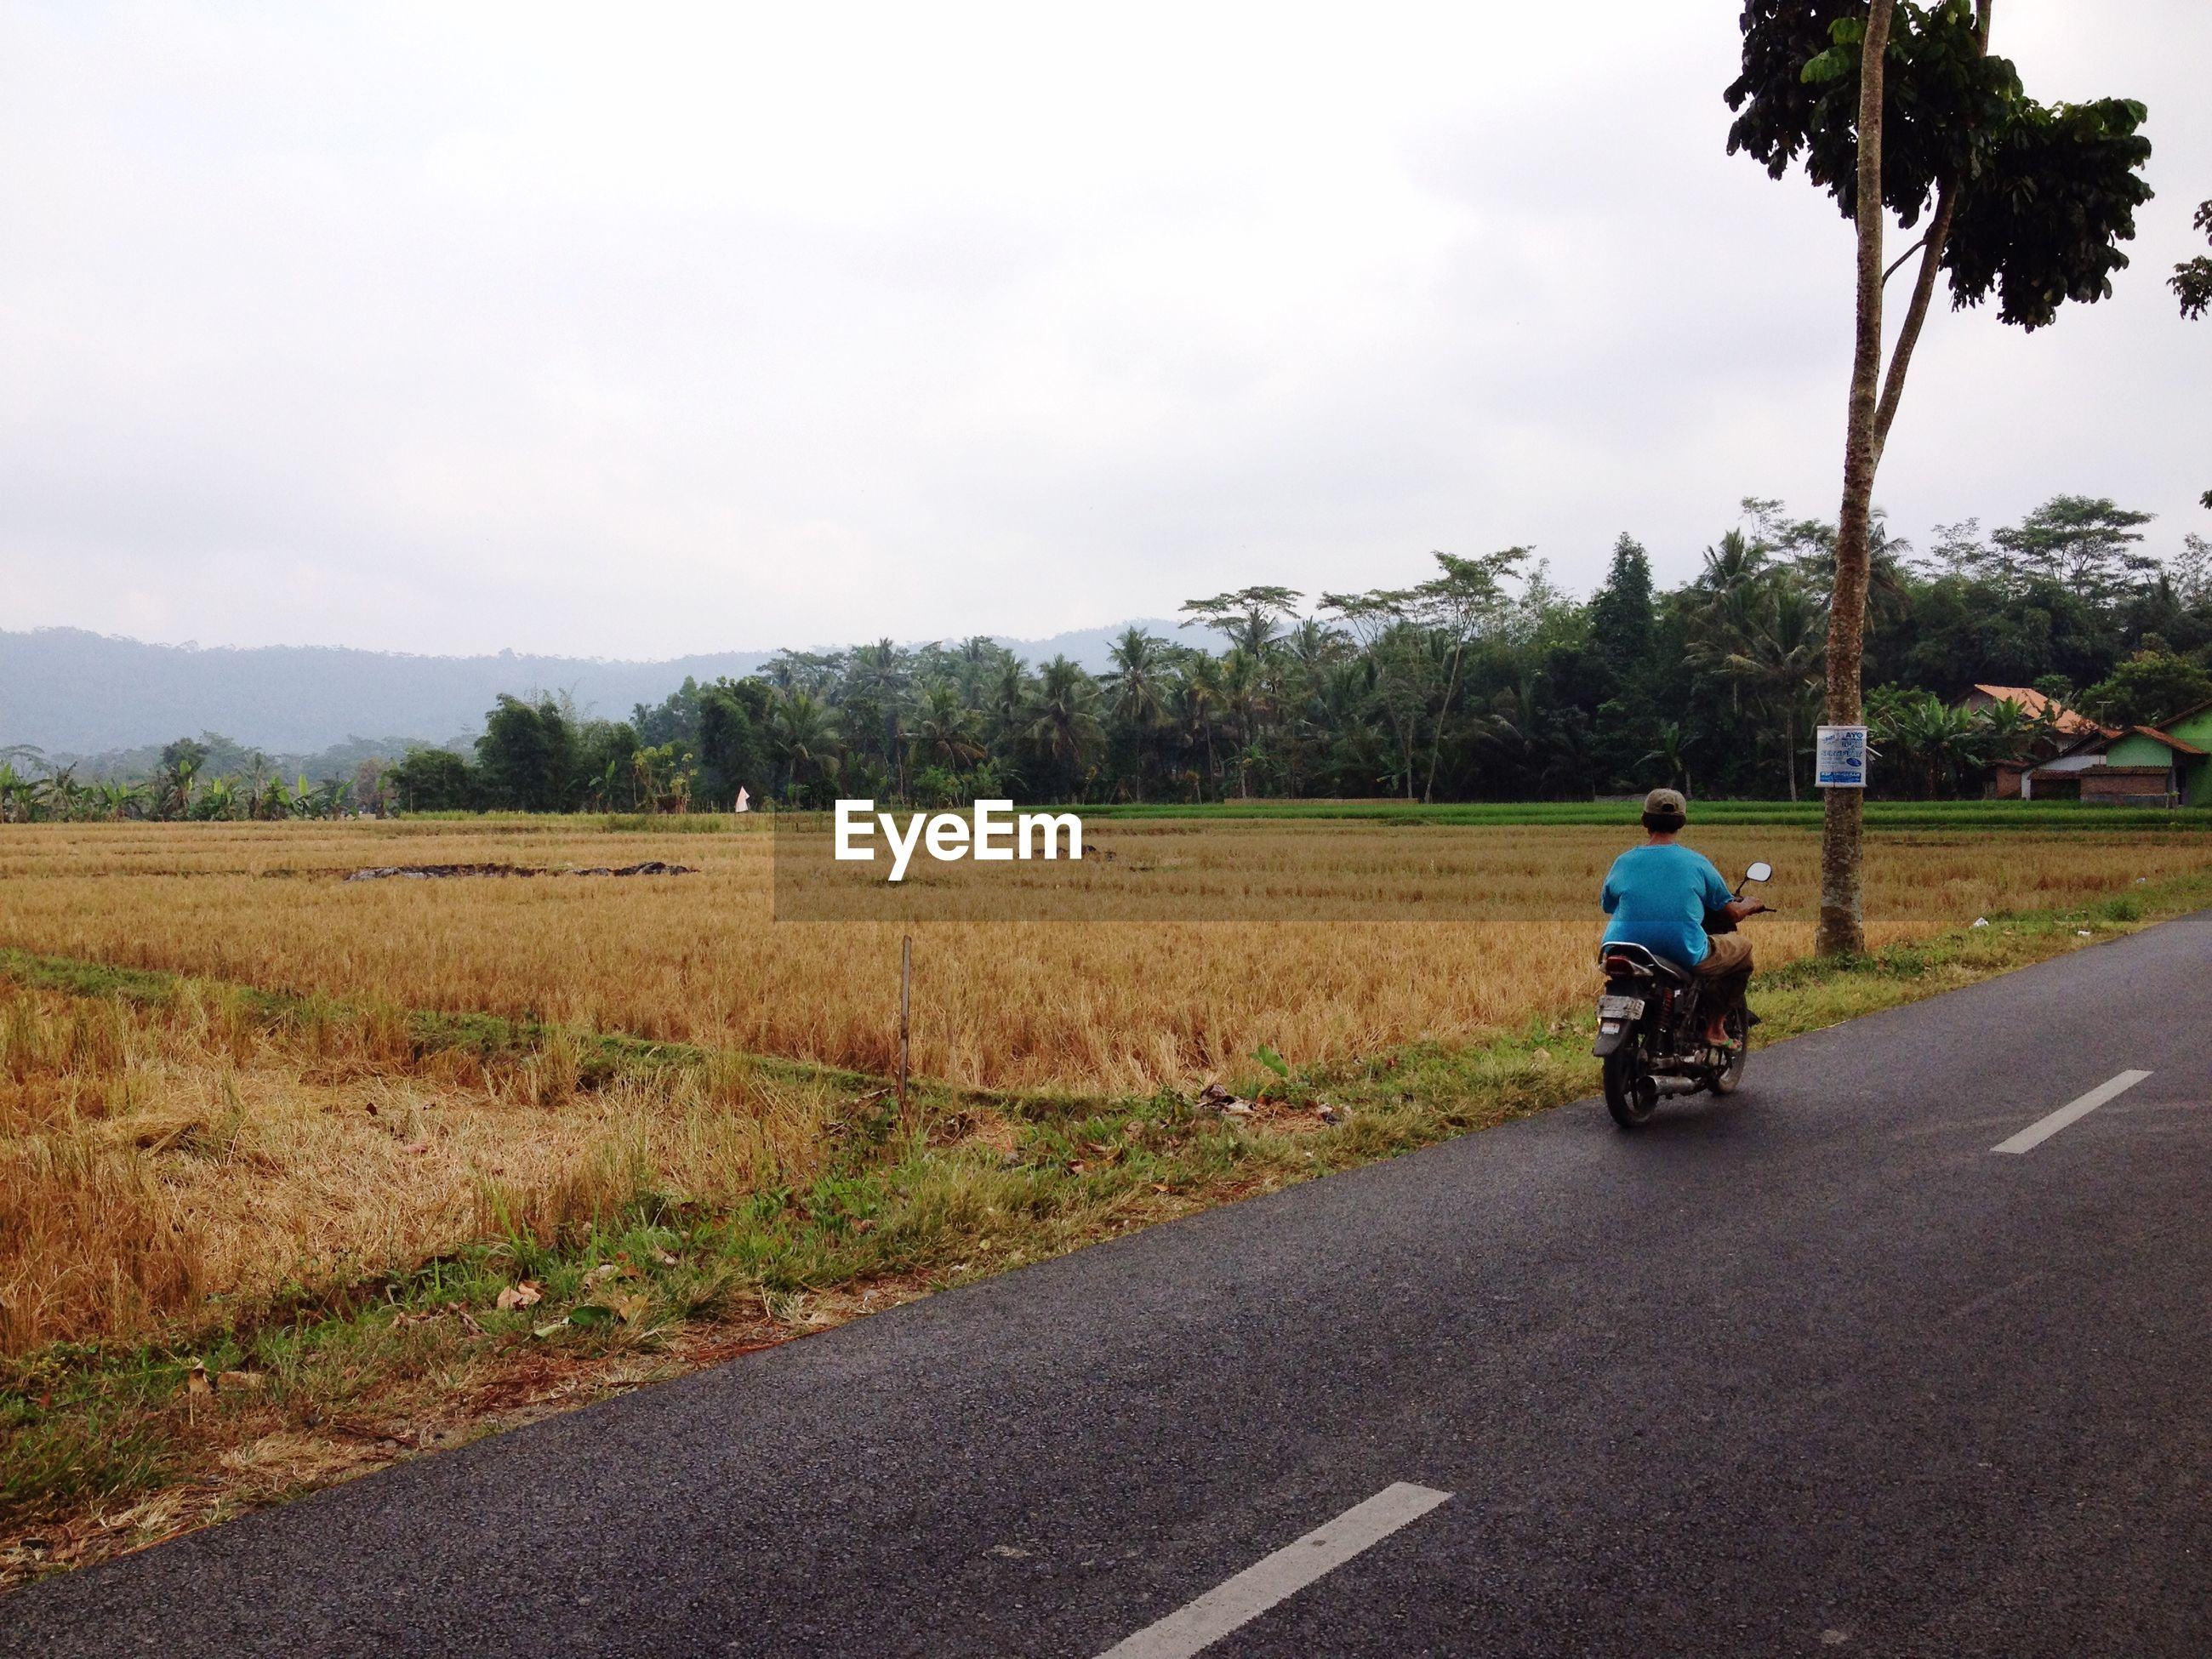 Rear view of man riding motor scooter on road by grassy field against sky